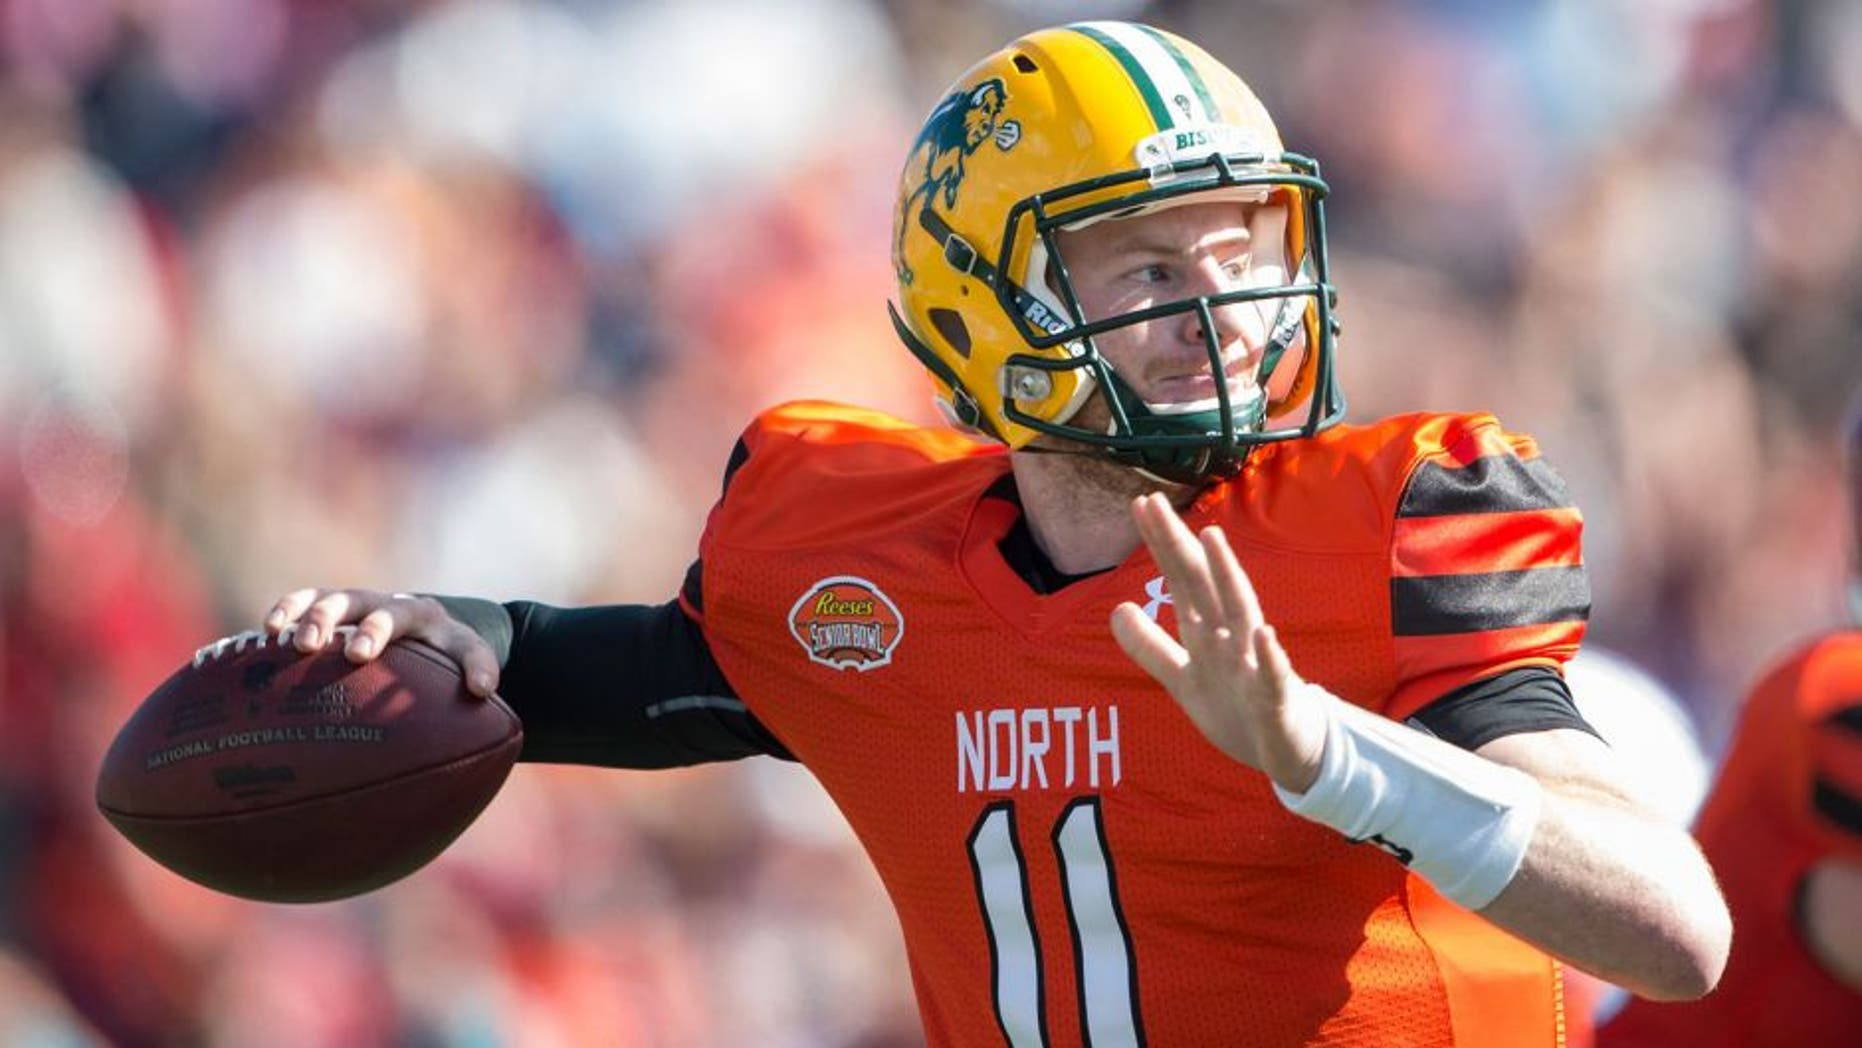 MOBILE, AL - JANUARY 30: North team's quarterback Carson Wentz #11 with North Dakota State looks to throw a pass during their game against the South Team on January 30, 2016 at Ladd-Peebles Stadium in Mobile, Alabama. (Photo by Michael Chang/Getty Images)